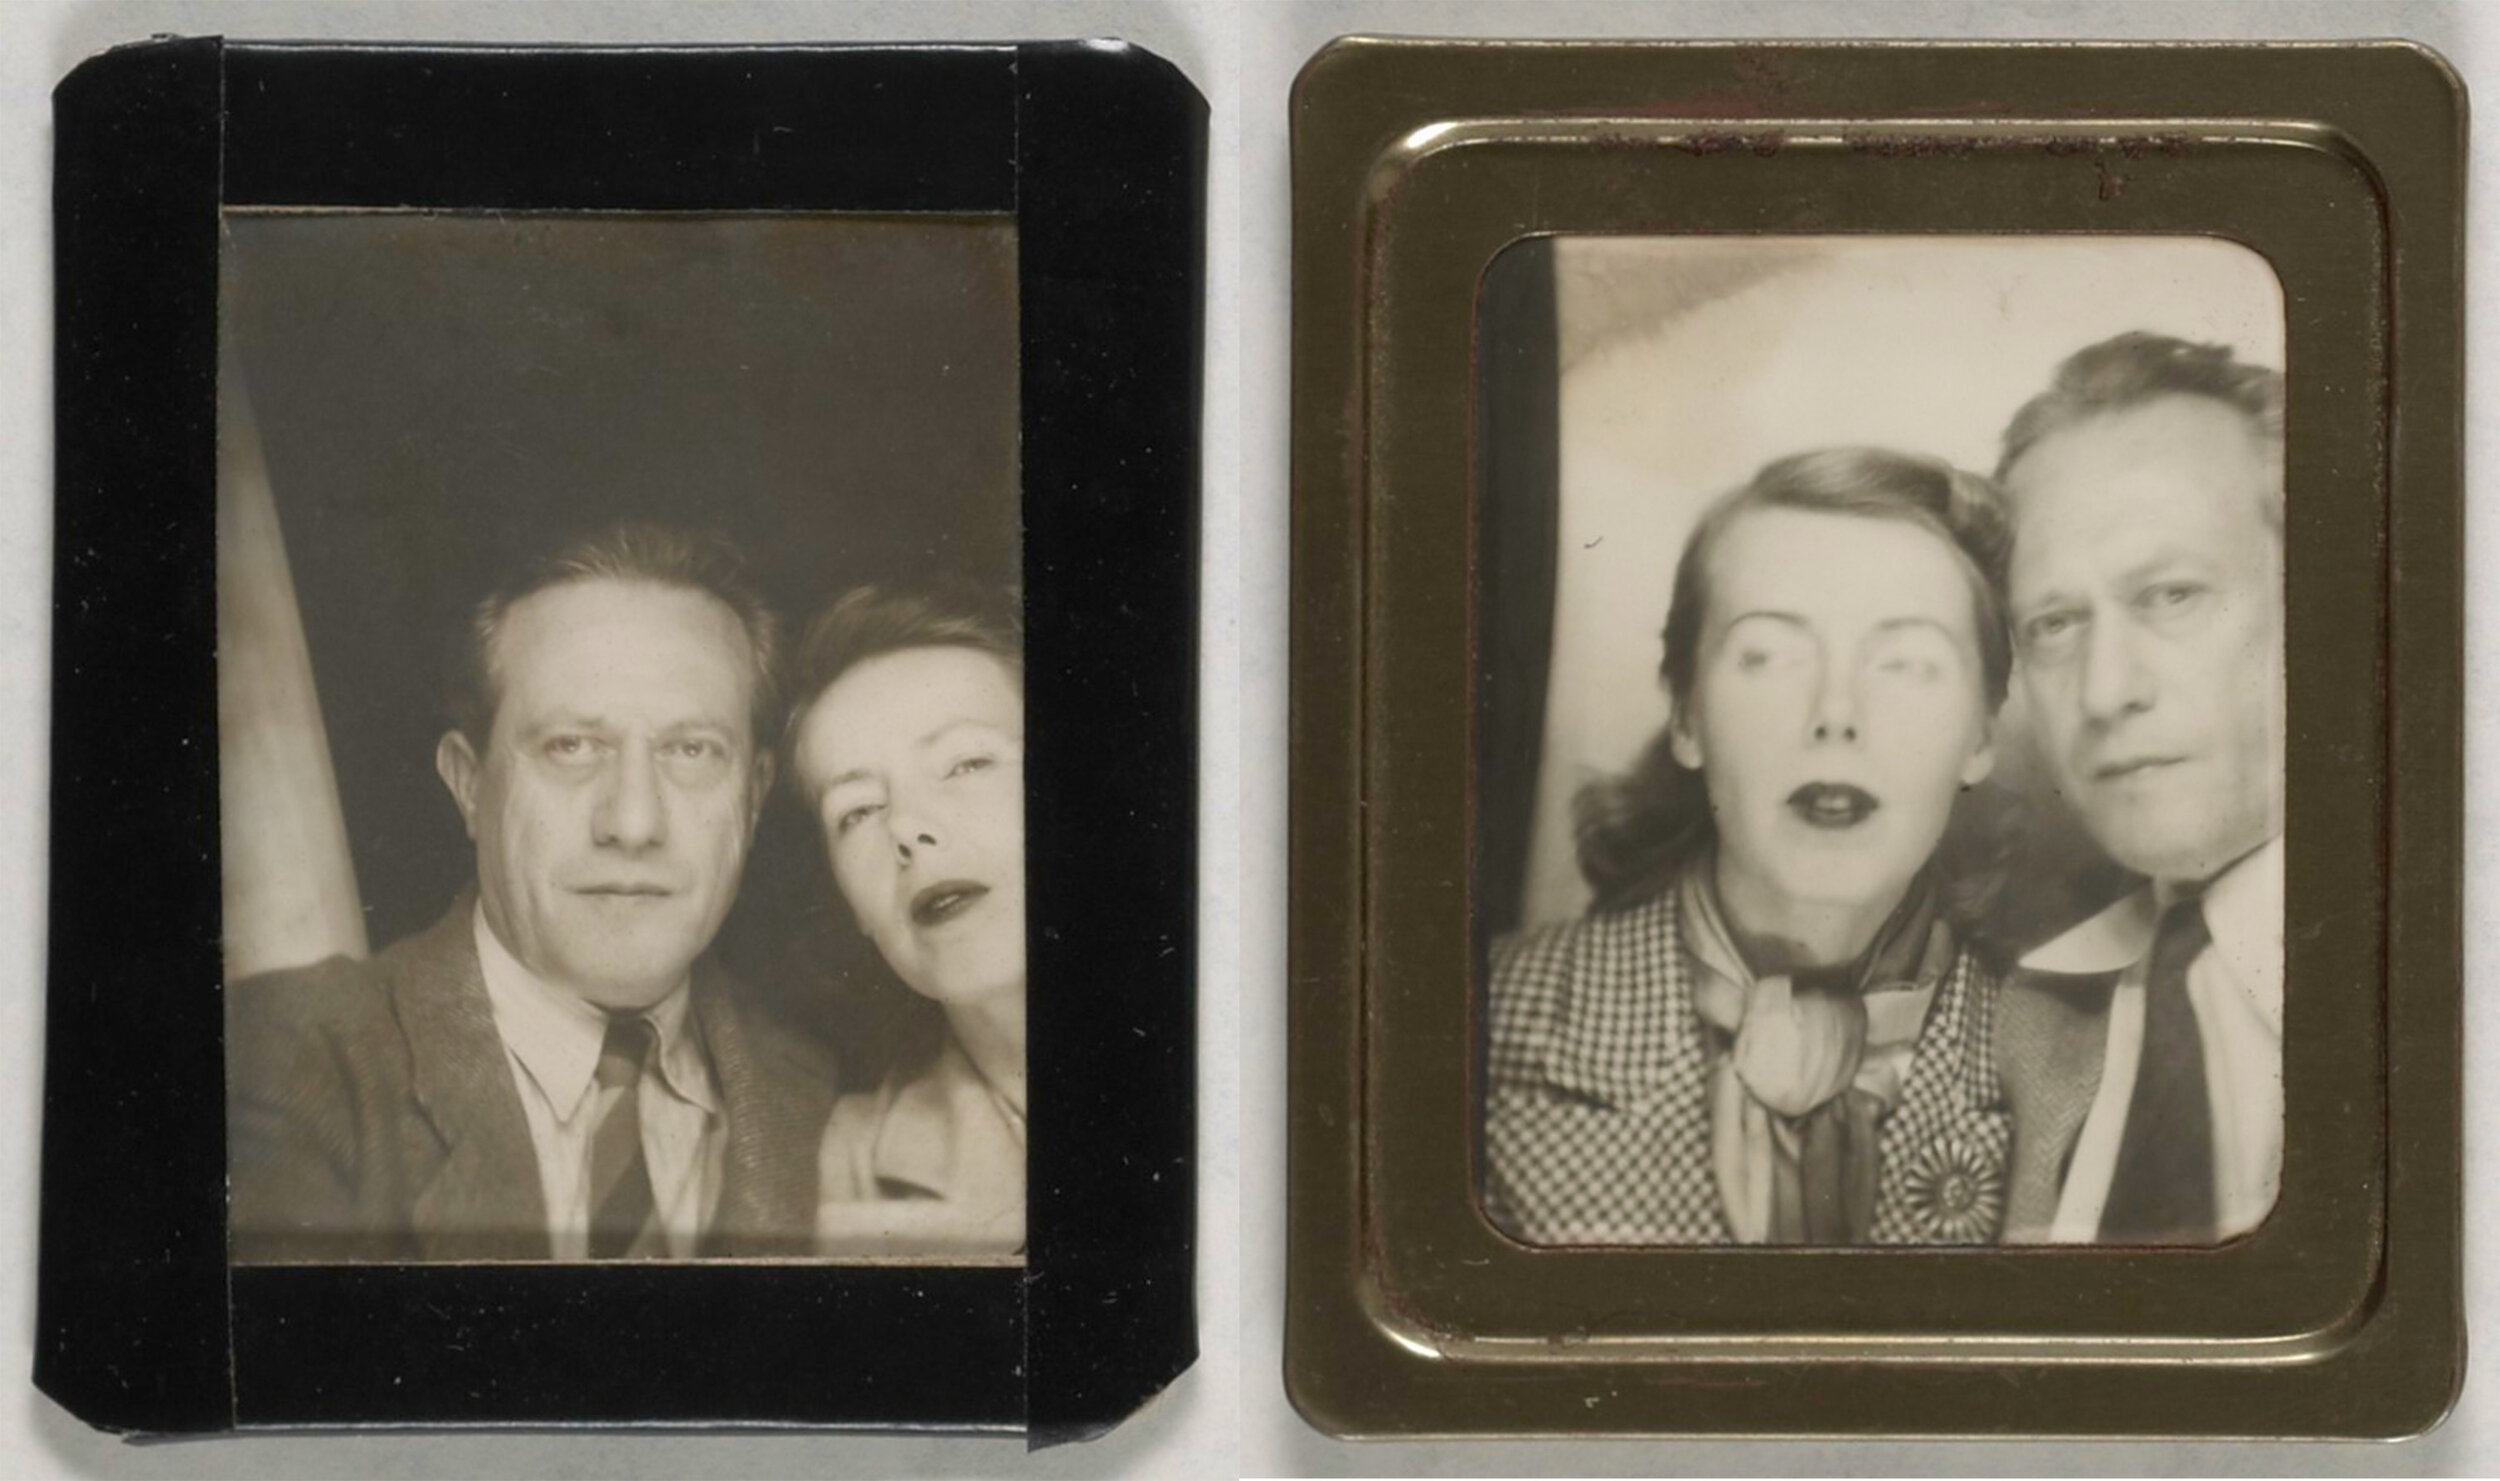 Helen Lundeberg and Lorser Feiteson, c. 1930s.